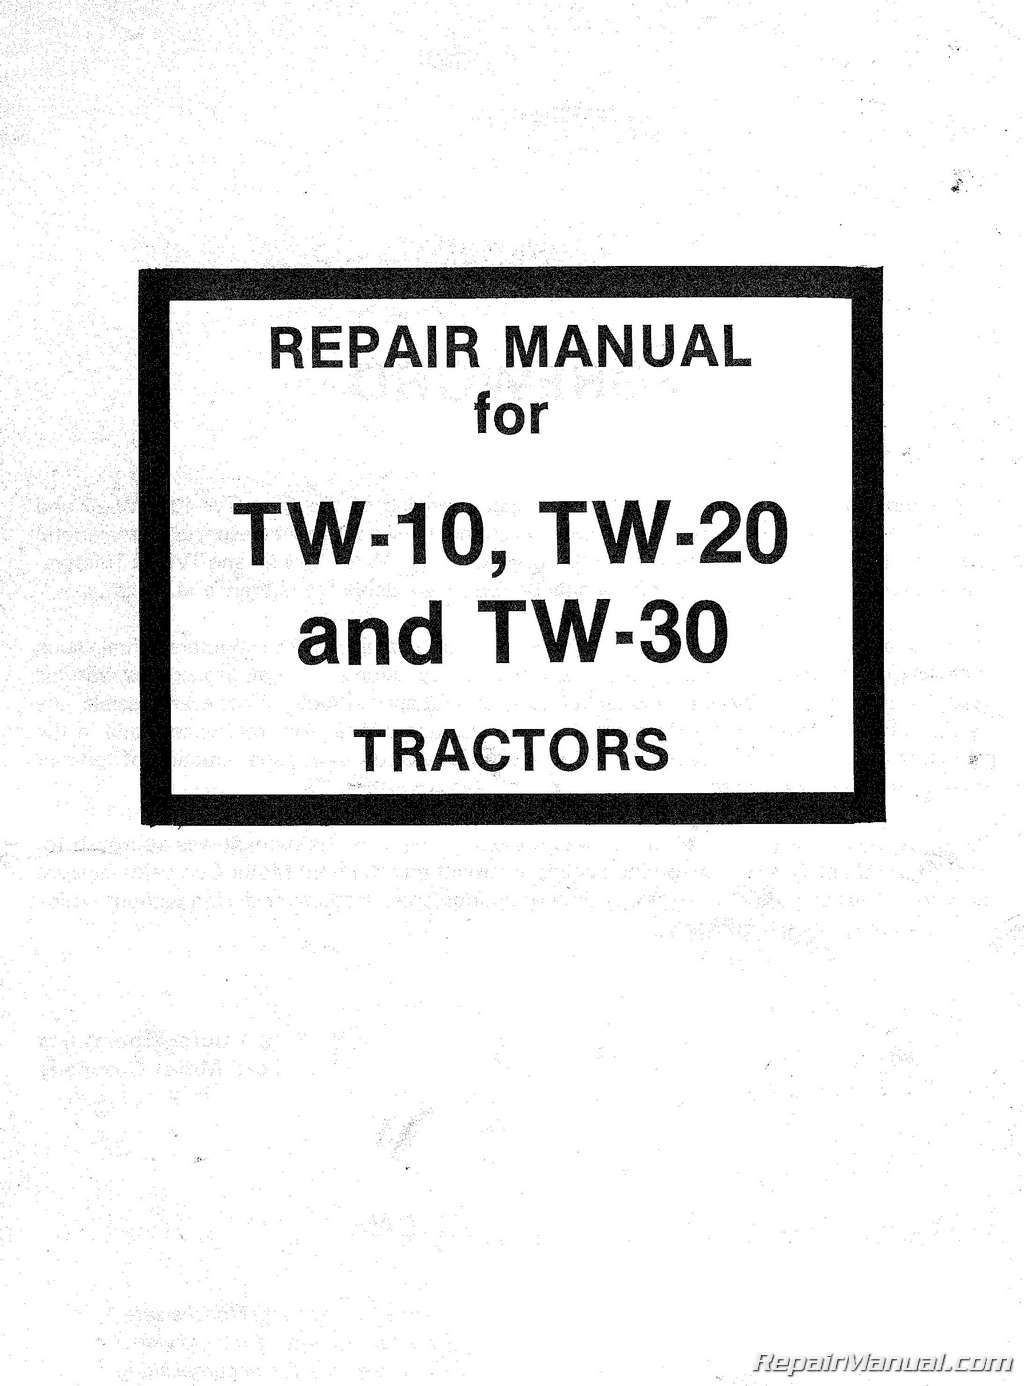 Ford Tw 10 Tw 20 Tw 30 Tractor Service Repair Manual